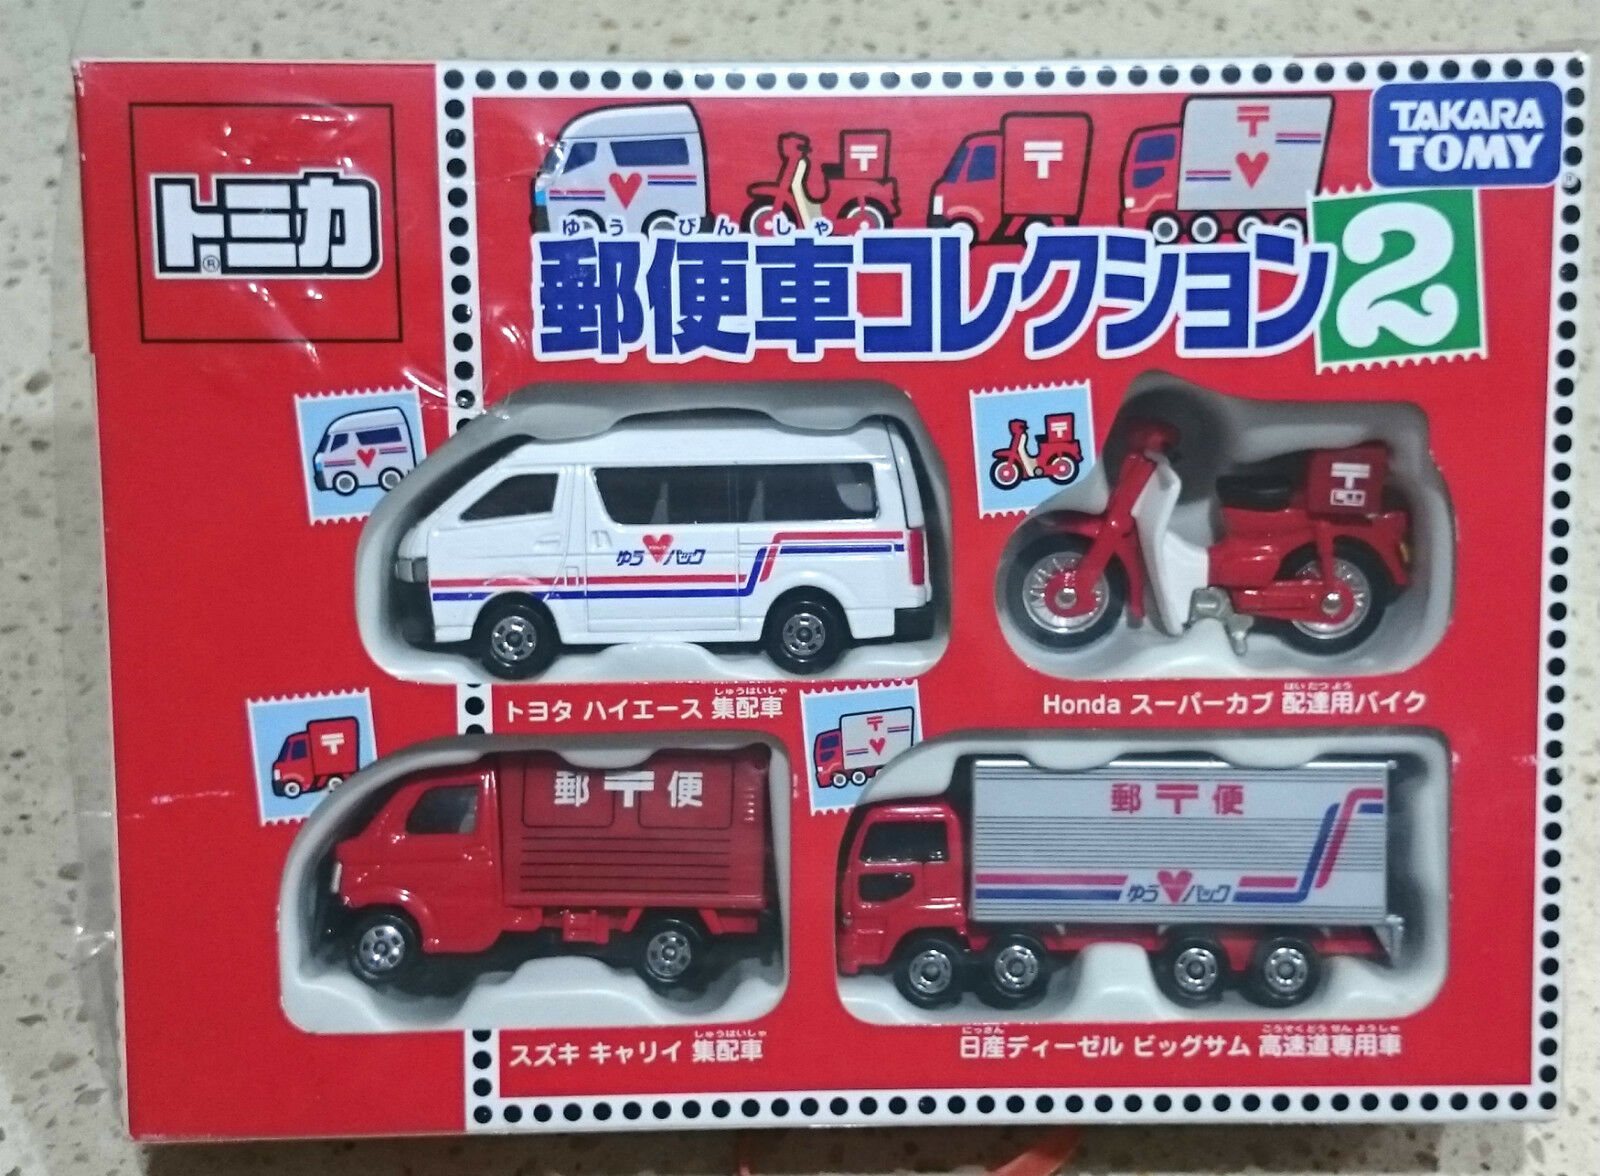 Tomy Tomica Japan  Post Office Set (2) VERY RARE (Limited Edition)